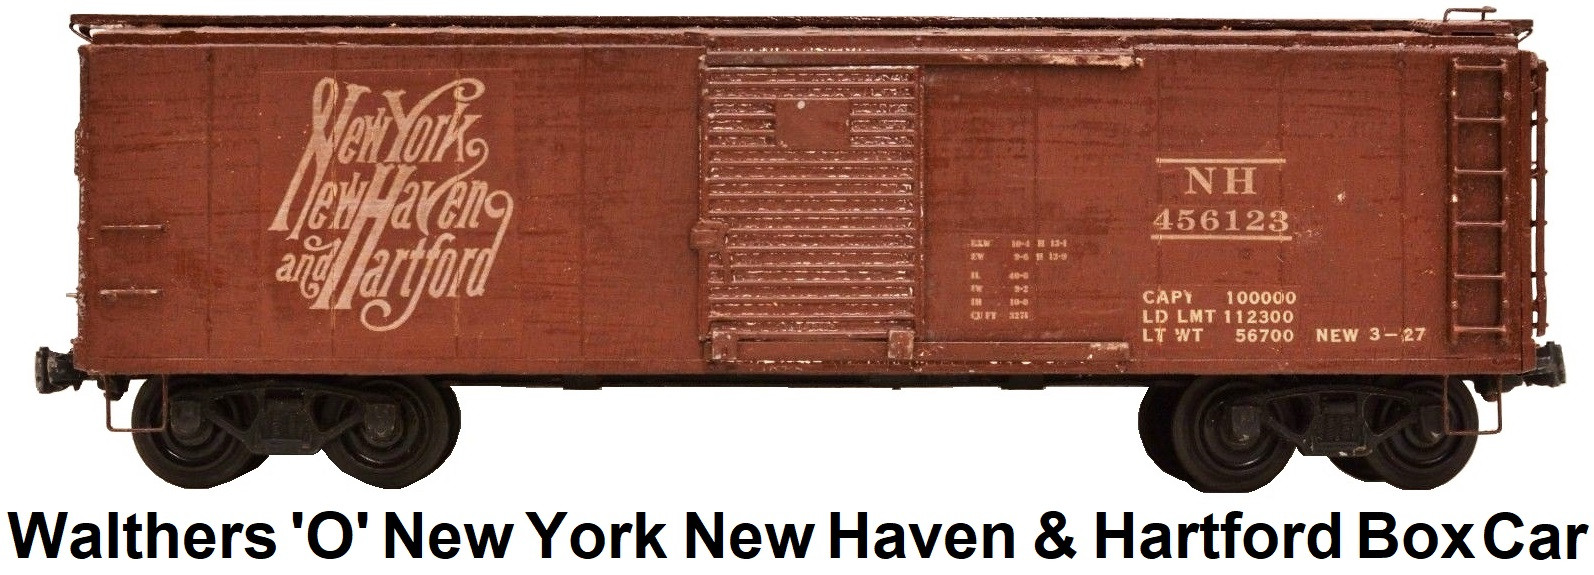 Walthers 'O' scale Kit-built Wood New York New Haven & Hartford Box Car